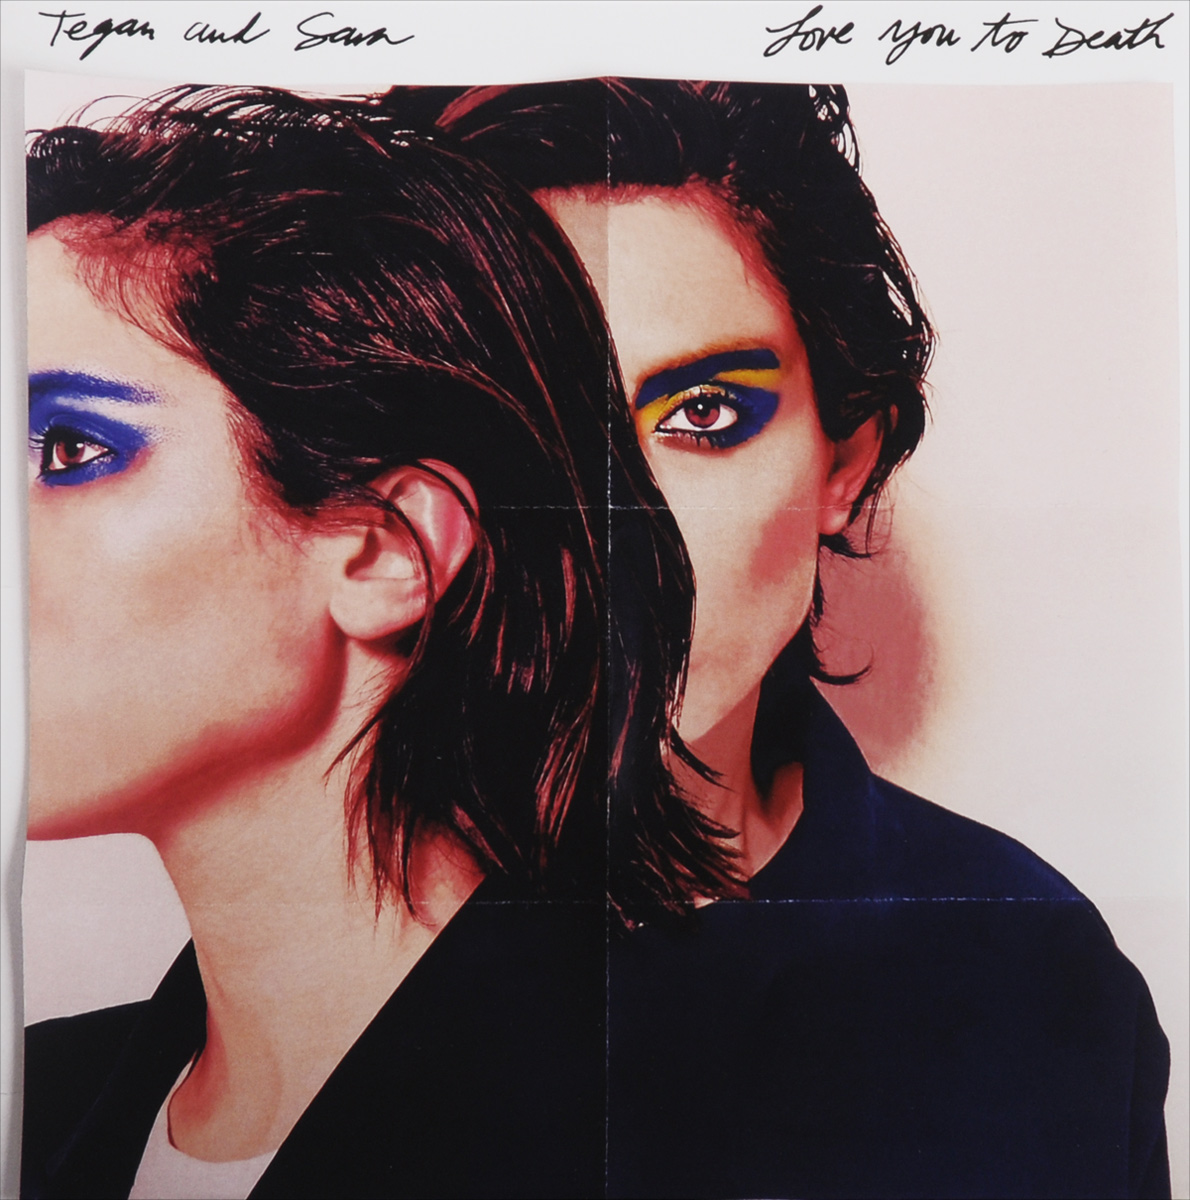 Tegan And Sara Tegan And Sara. Love You To Death (LP)